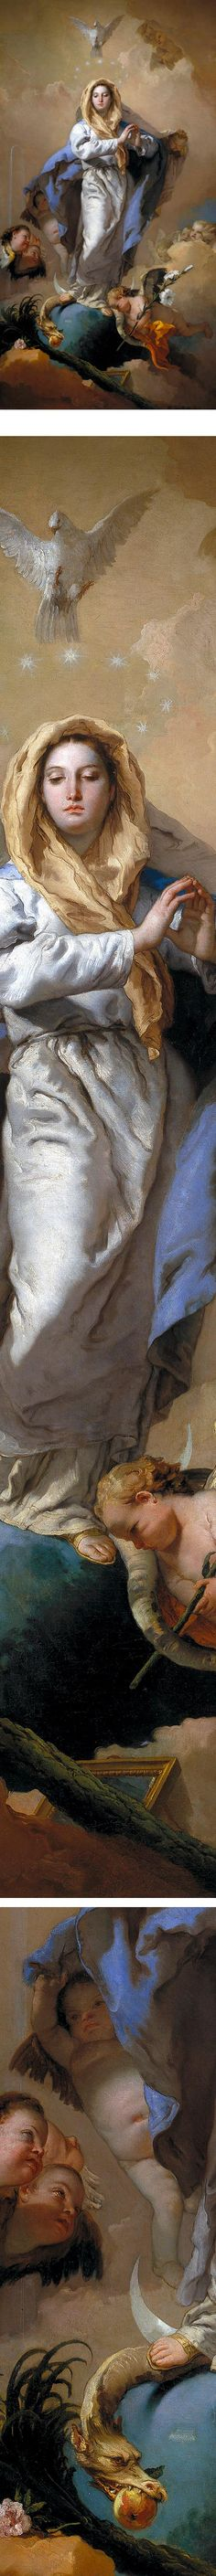 """❥ The Immaculate Conception, Giambattista Tiepolo~ """"I saw the Spirit come down like a dove"""" John 1:32 """"A great sign appeared in the sky, a woman clothed with the sun, with the moon under her feet, and on her head a crown of twelve stars."""" Rev 12:1, """"Like a lily among thorns, so is my friend among women."""" Songs 2:2, """"Behold, I have given you the power 'to tread upon serpents' and scorpions and upon the full force of the enemy and nothing will harm you."""" Luke 10:19"""